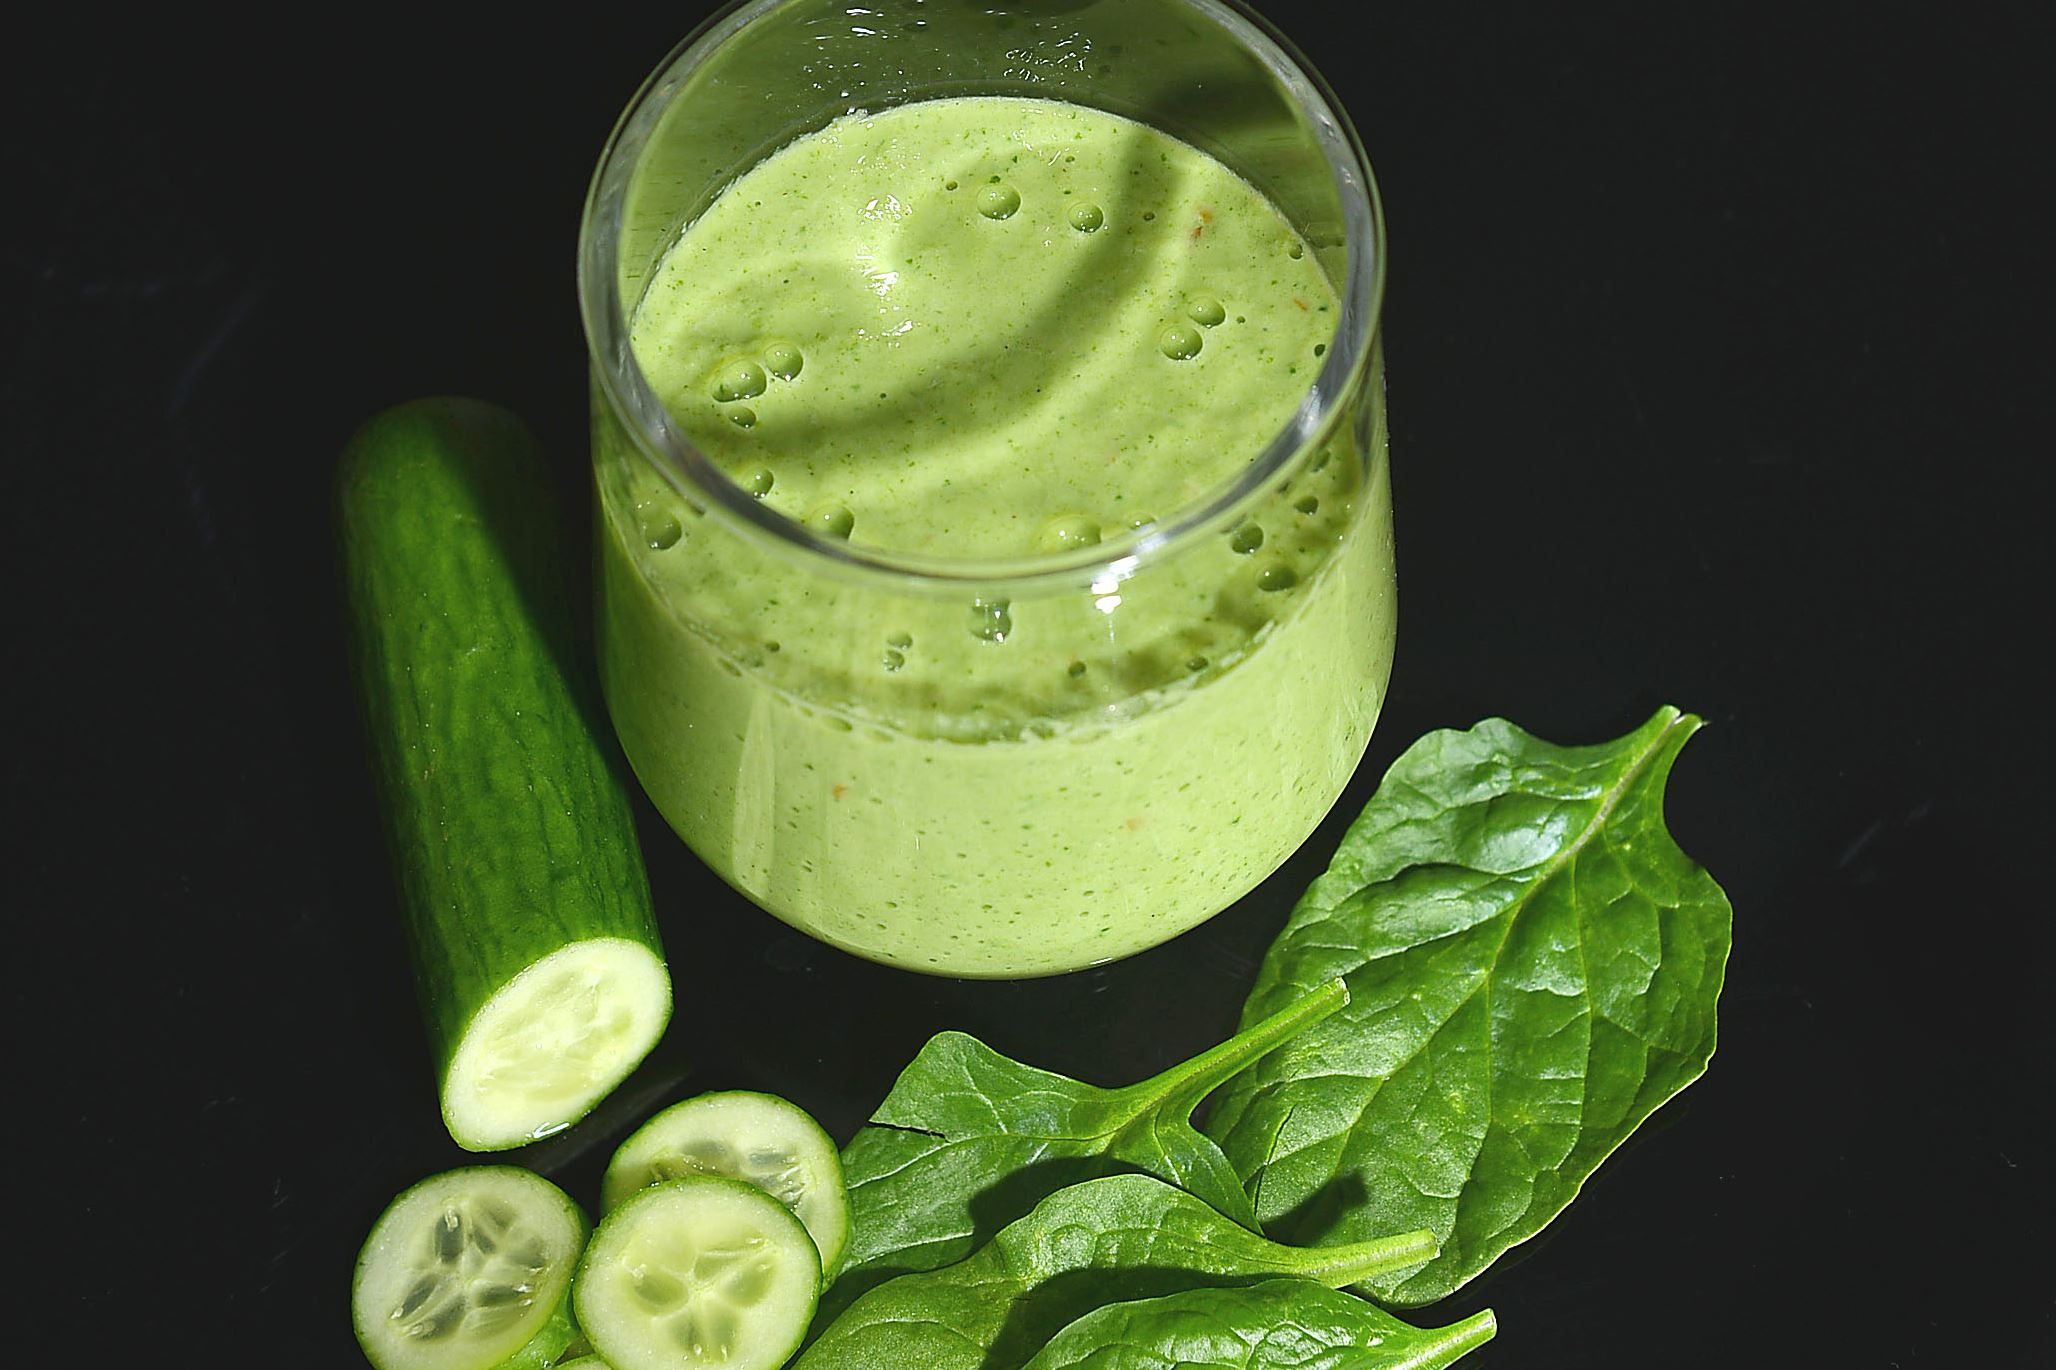 20160504ng-smoothie2-1 A vegetable smoothie, which includes spinach and cucumbers.